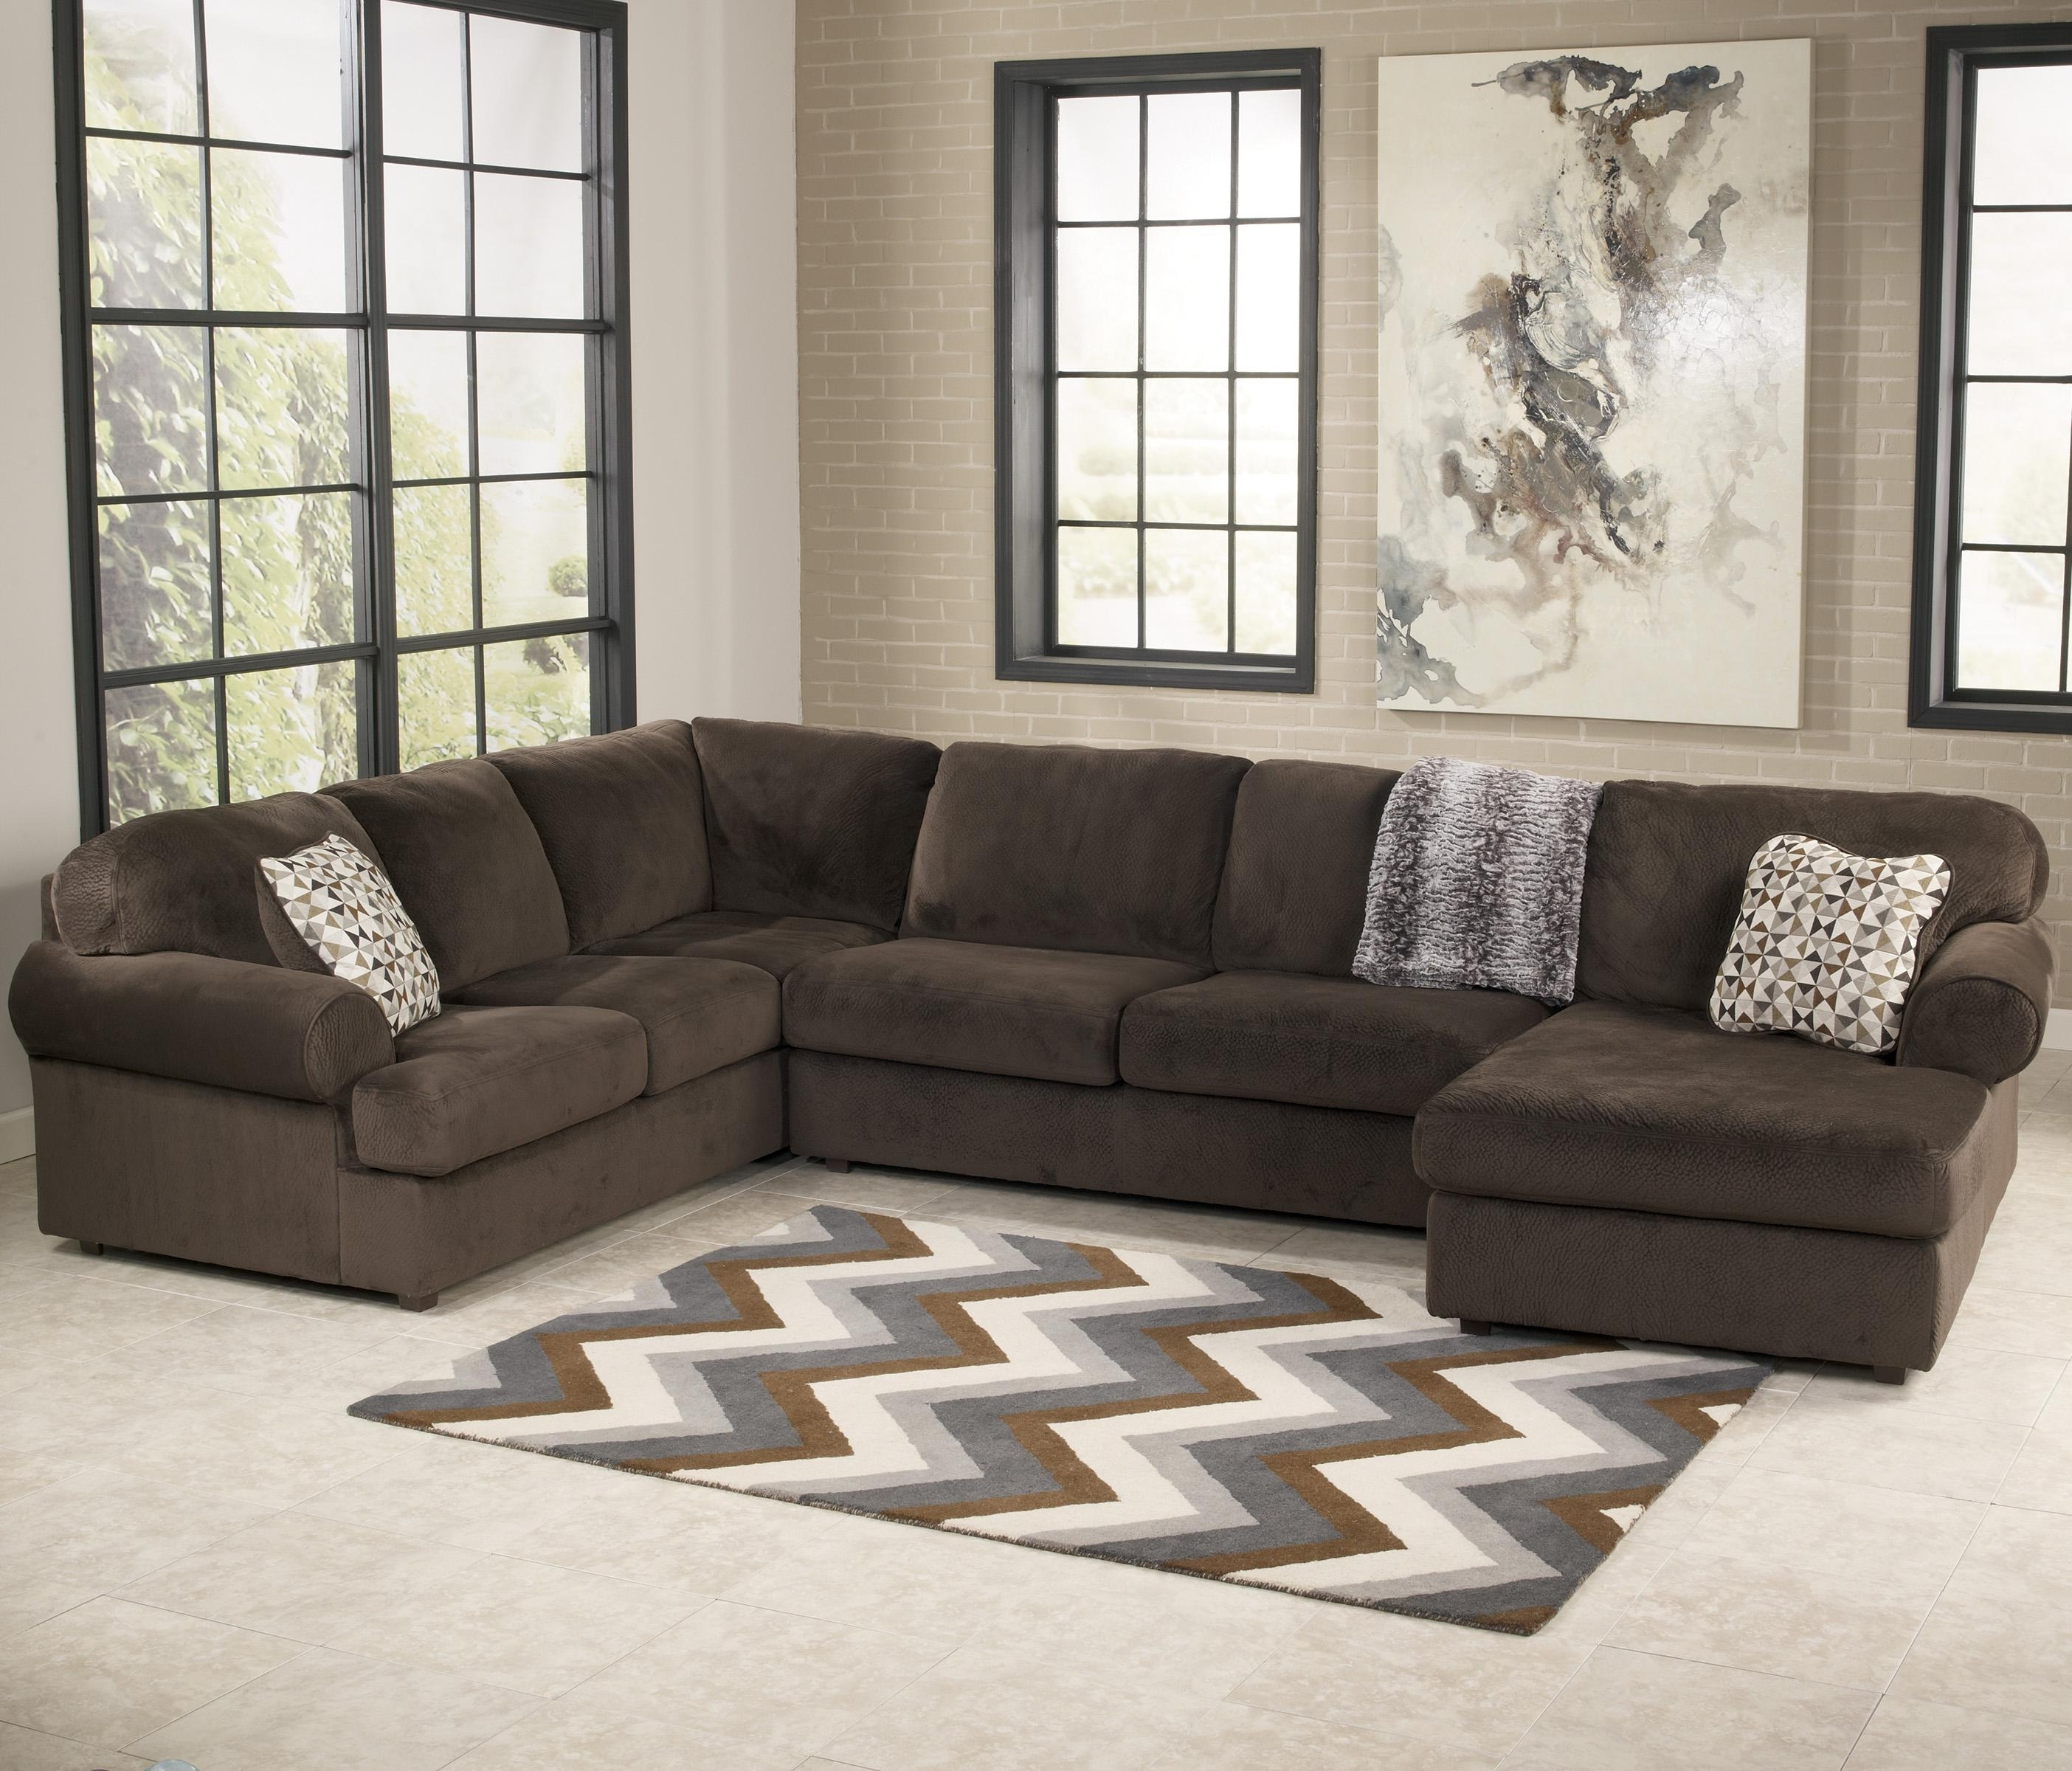 Signature Designashley Jessa Place – Chocolate Casual Intended For Fashionable East Bay Sectional Sofas (View 6 of 15)